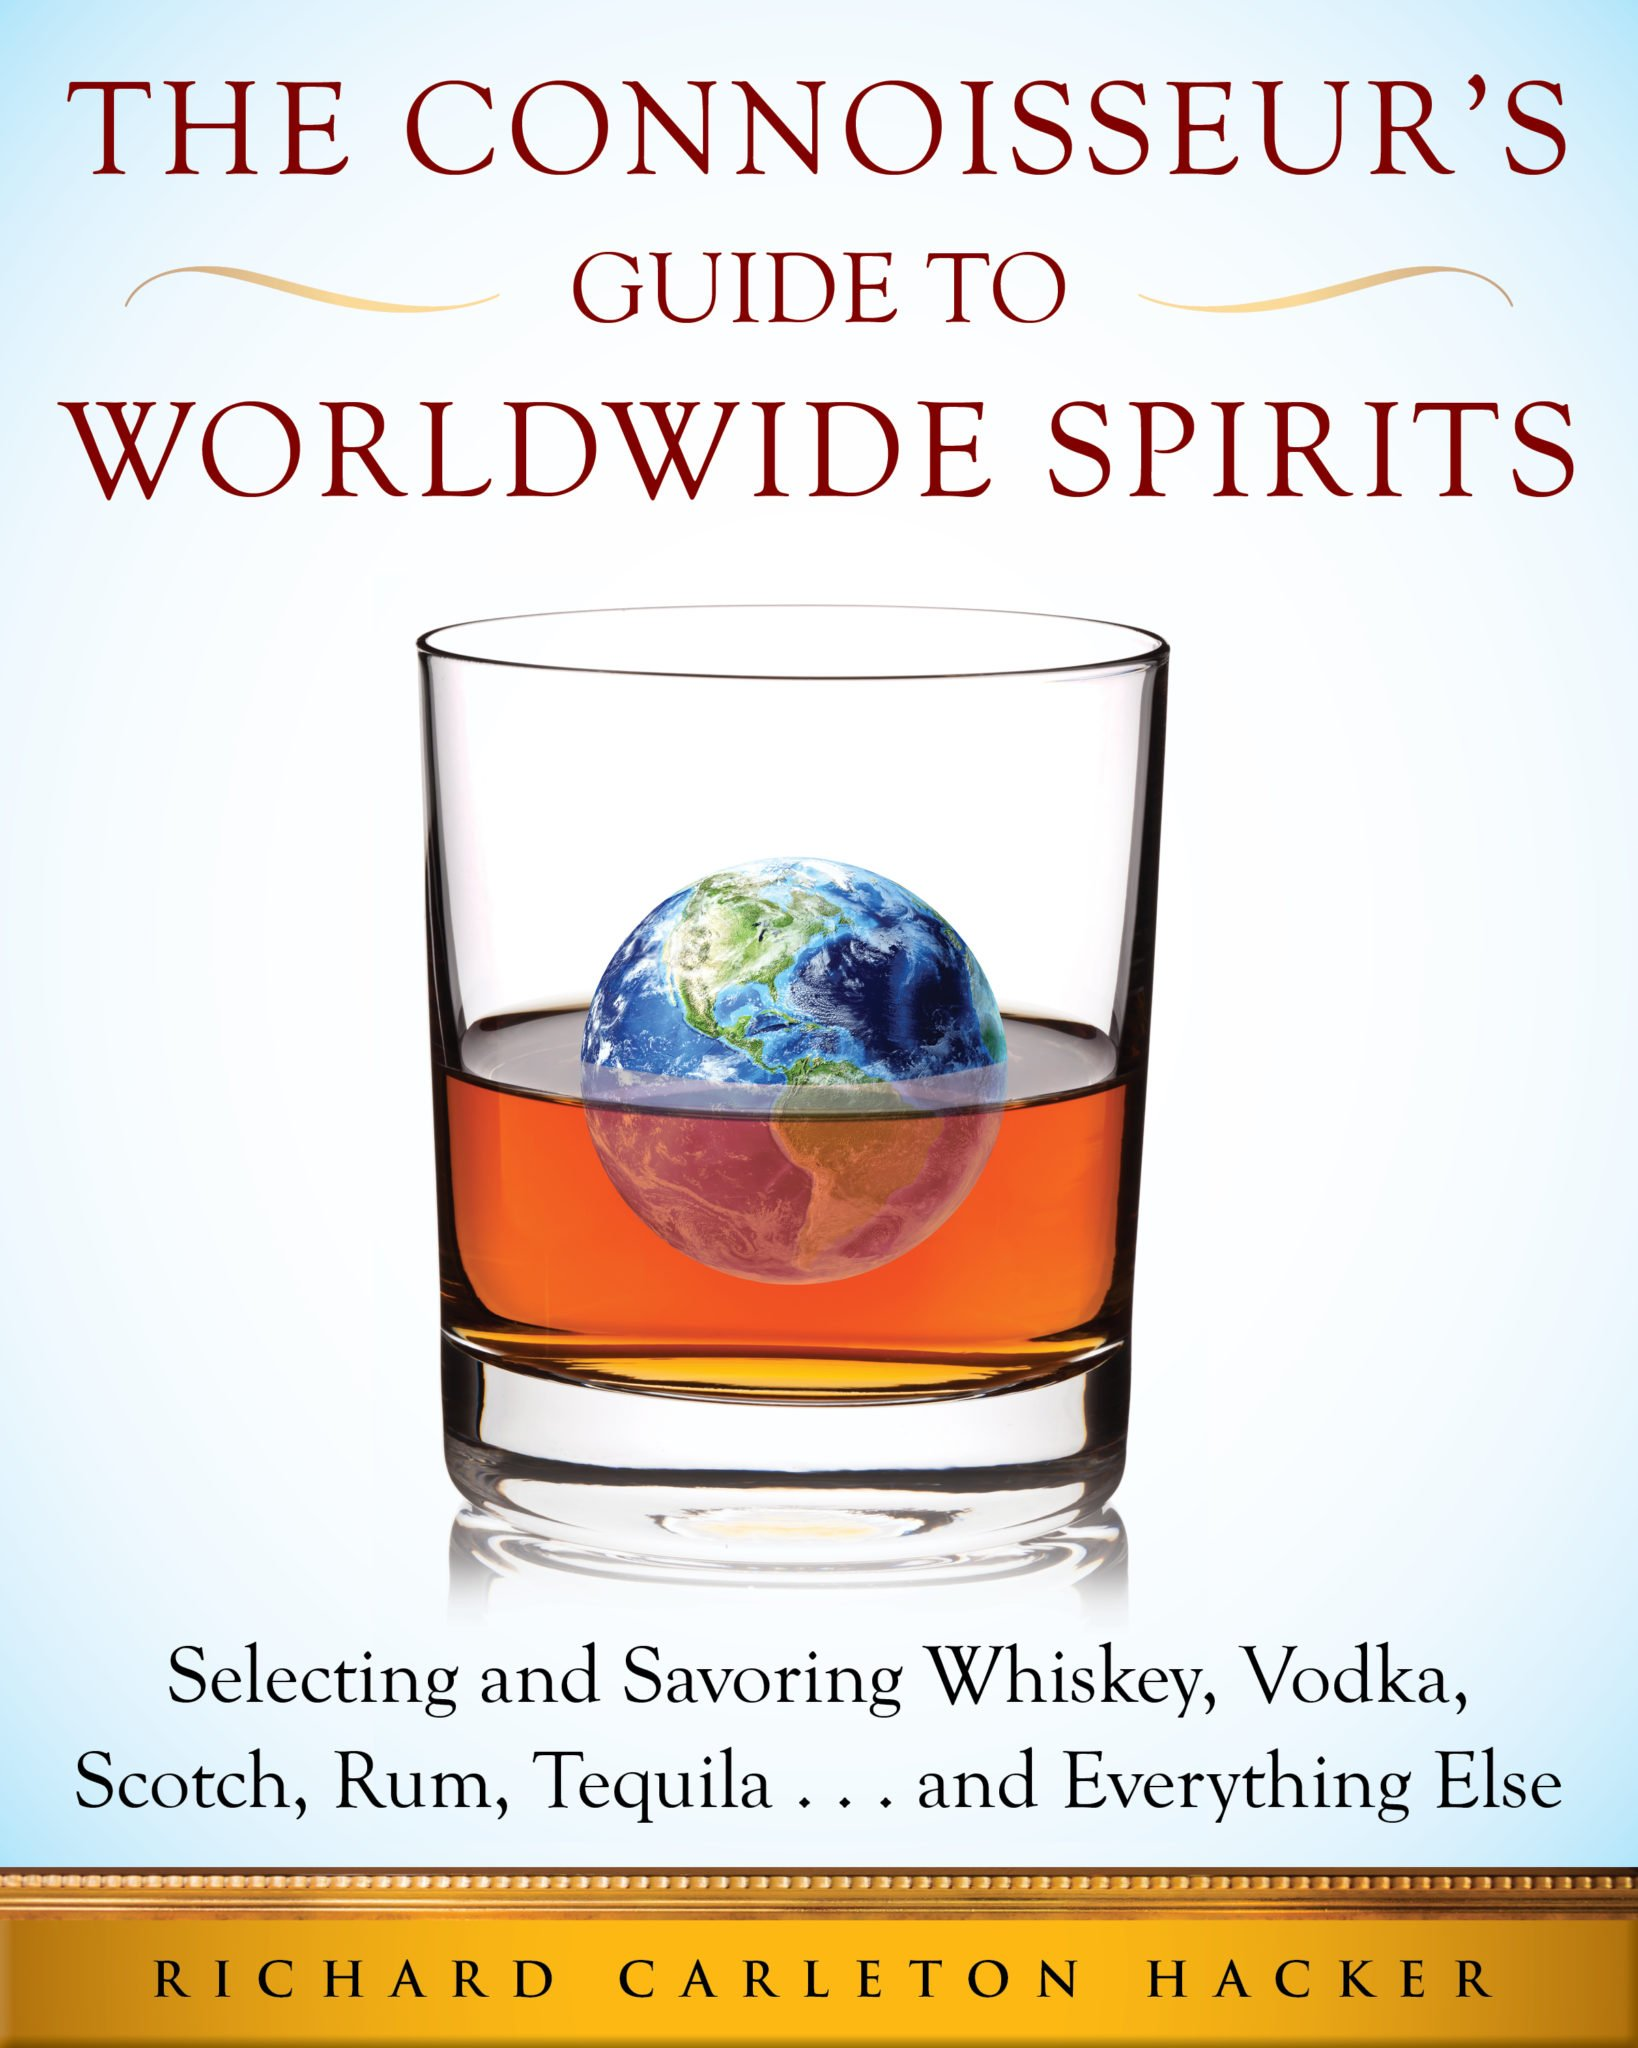 The Connoisseur's Guide to Worldwide Spirits